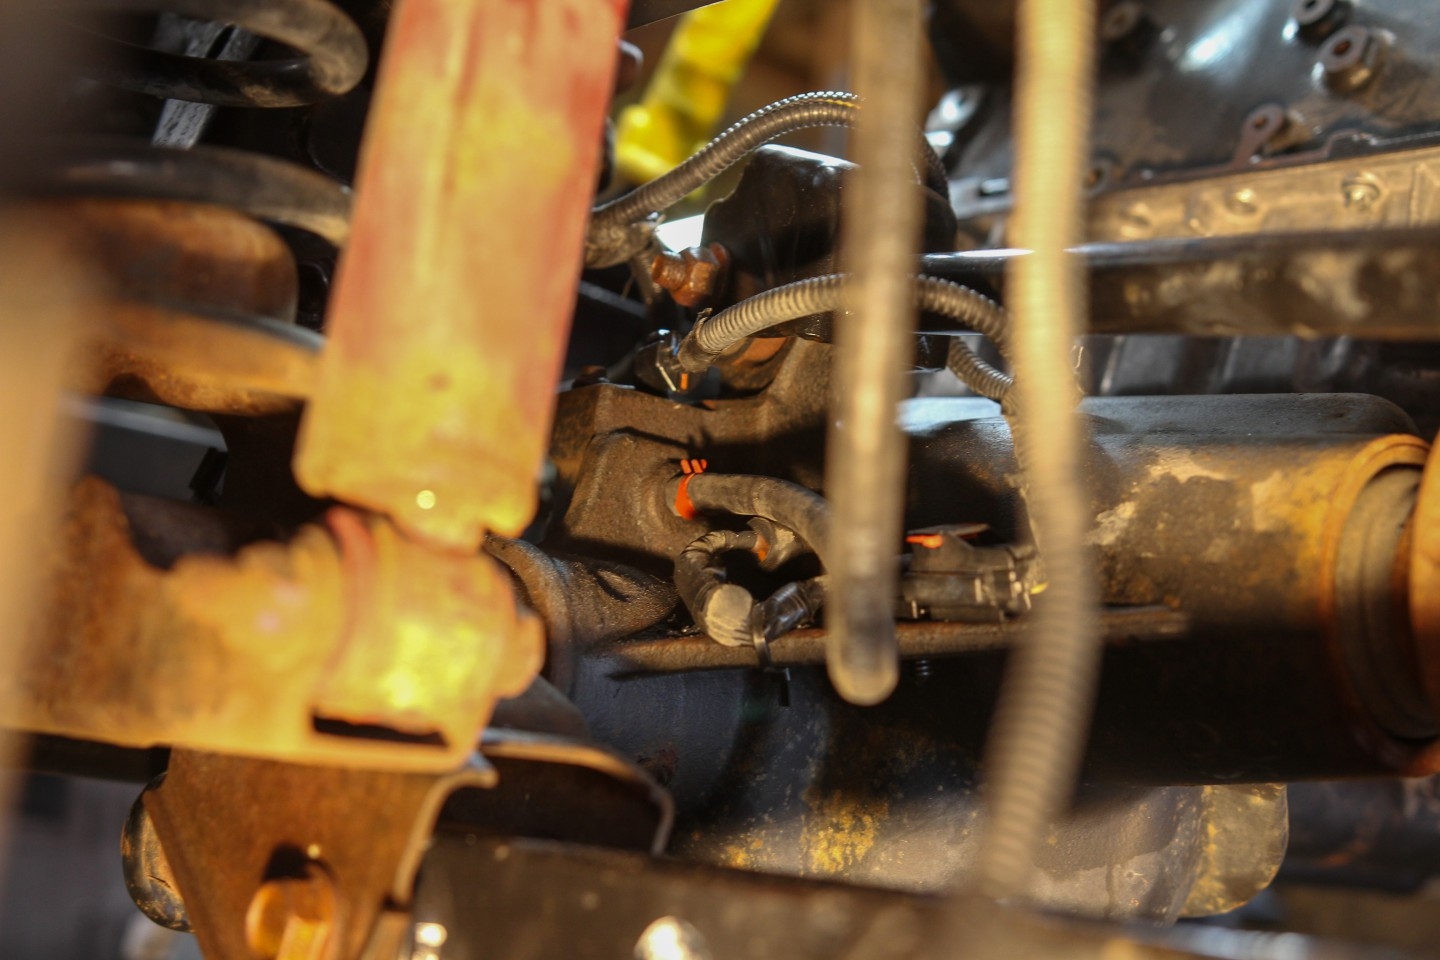 Diy Jeep Wrangler Jk Breather Hose Extensions The Road Chose Me Yj Engine Block Diagram Front Diff